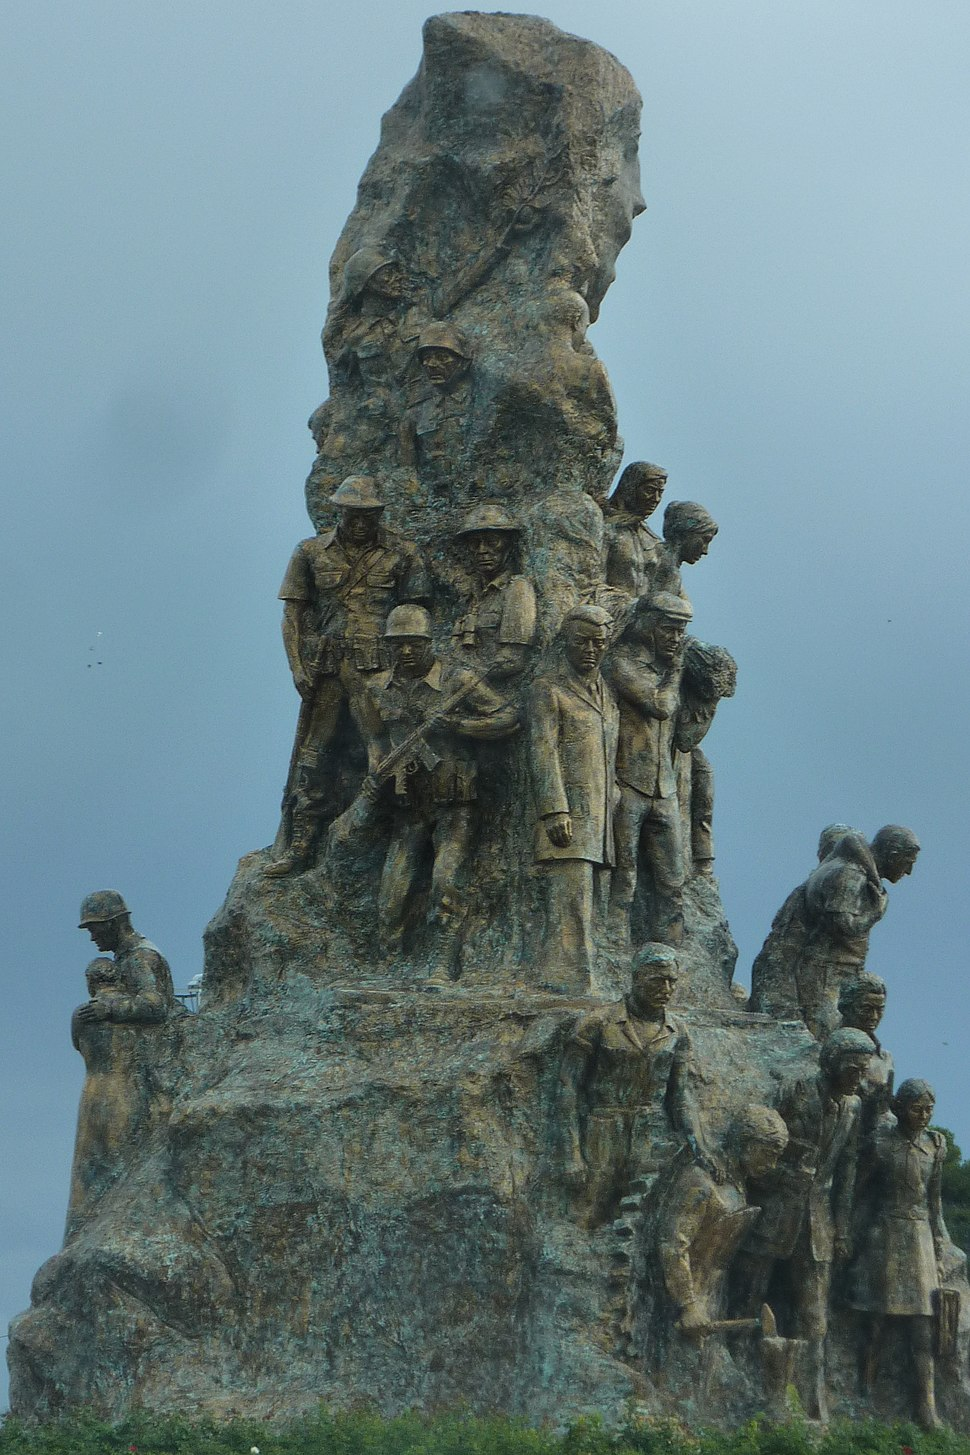 Victory monument in Famagusta